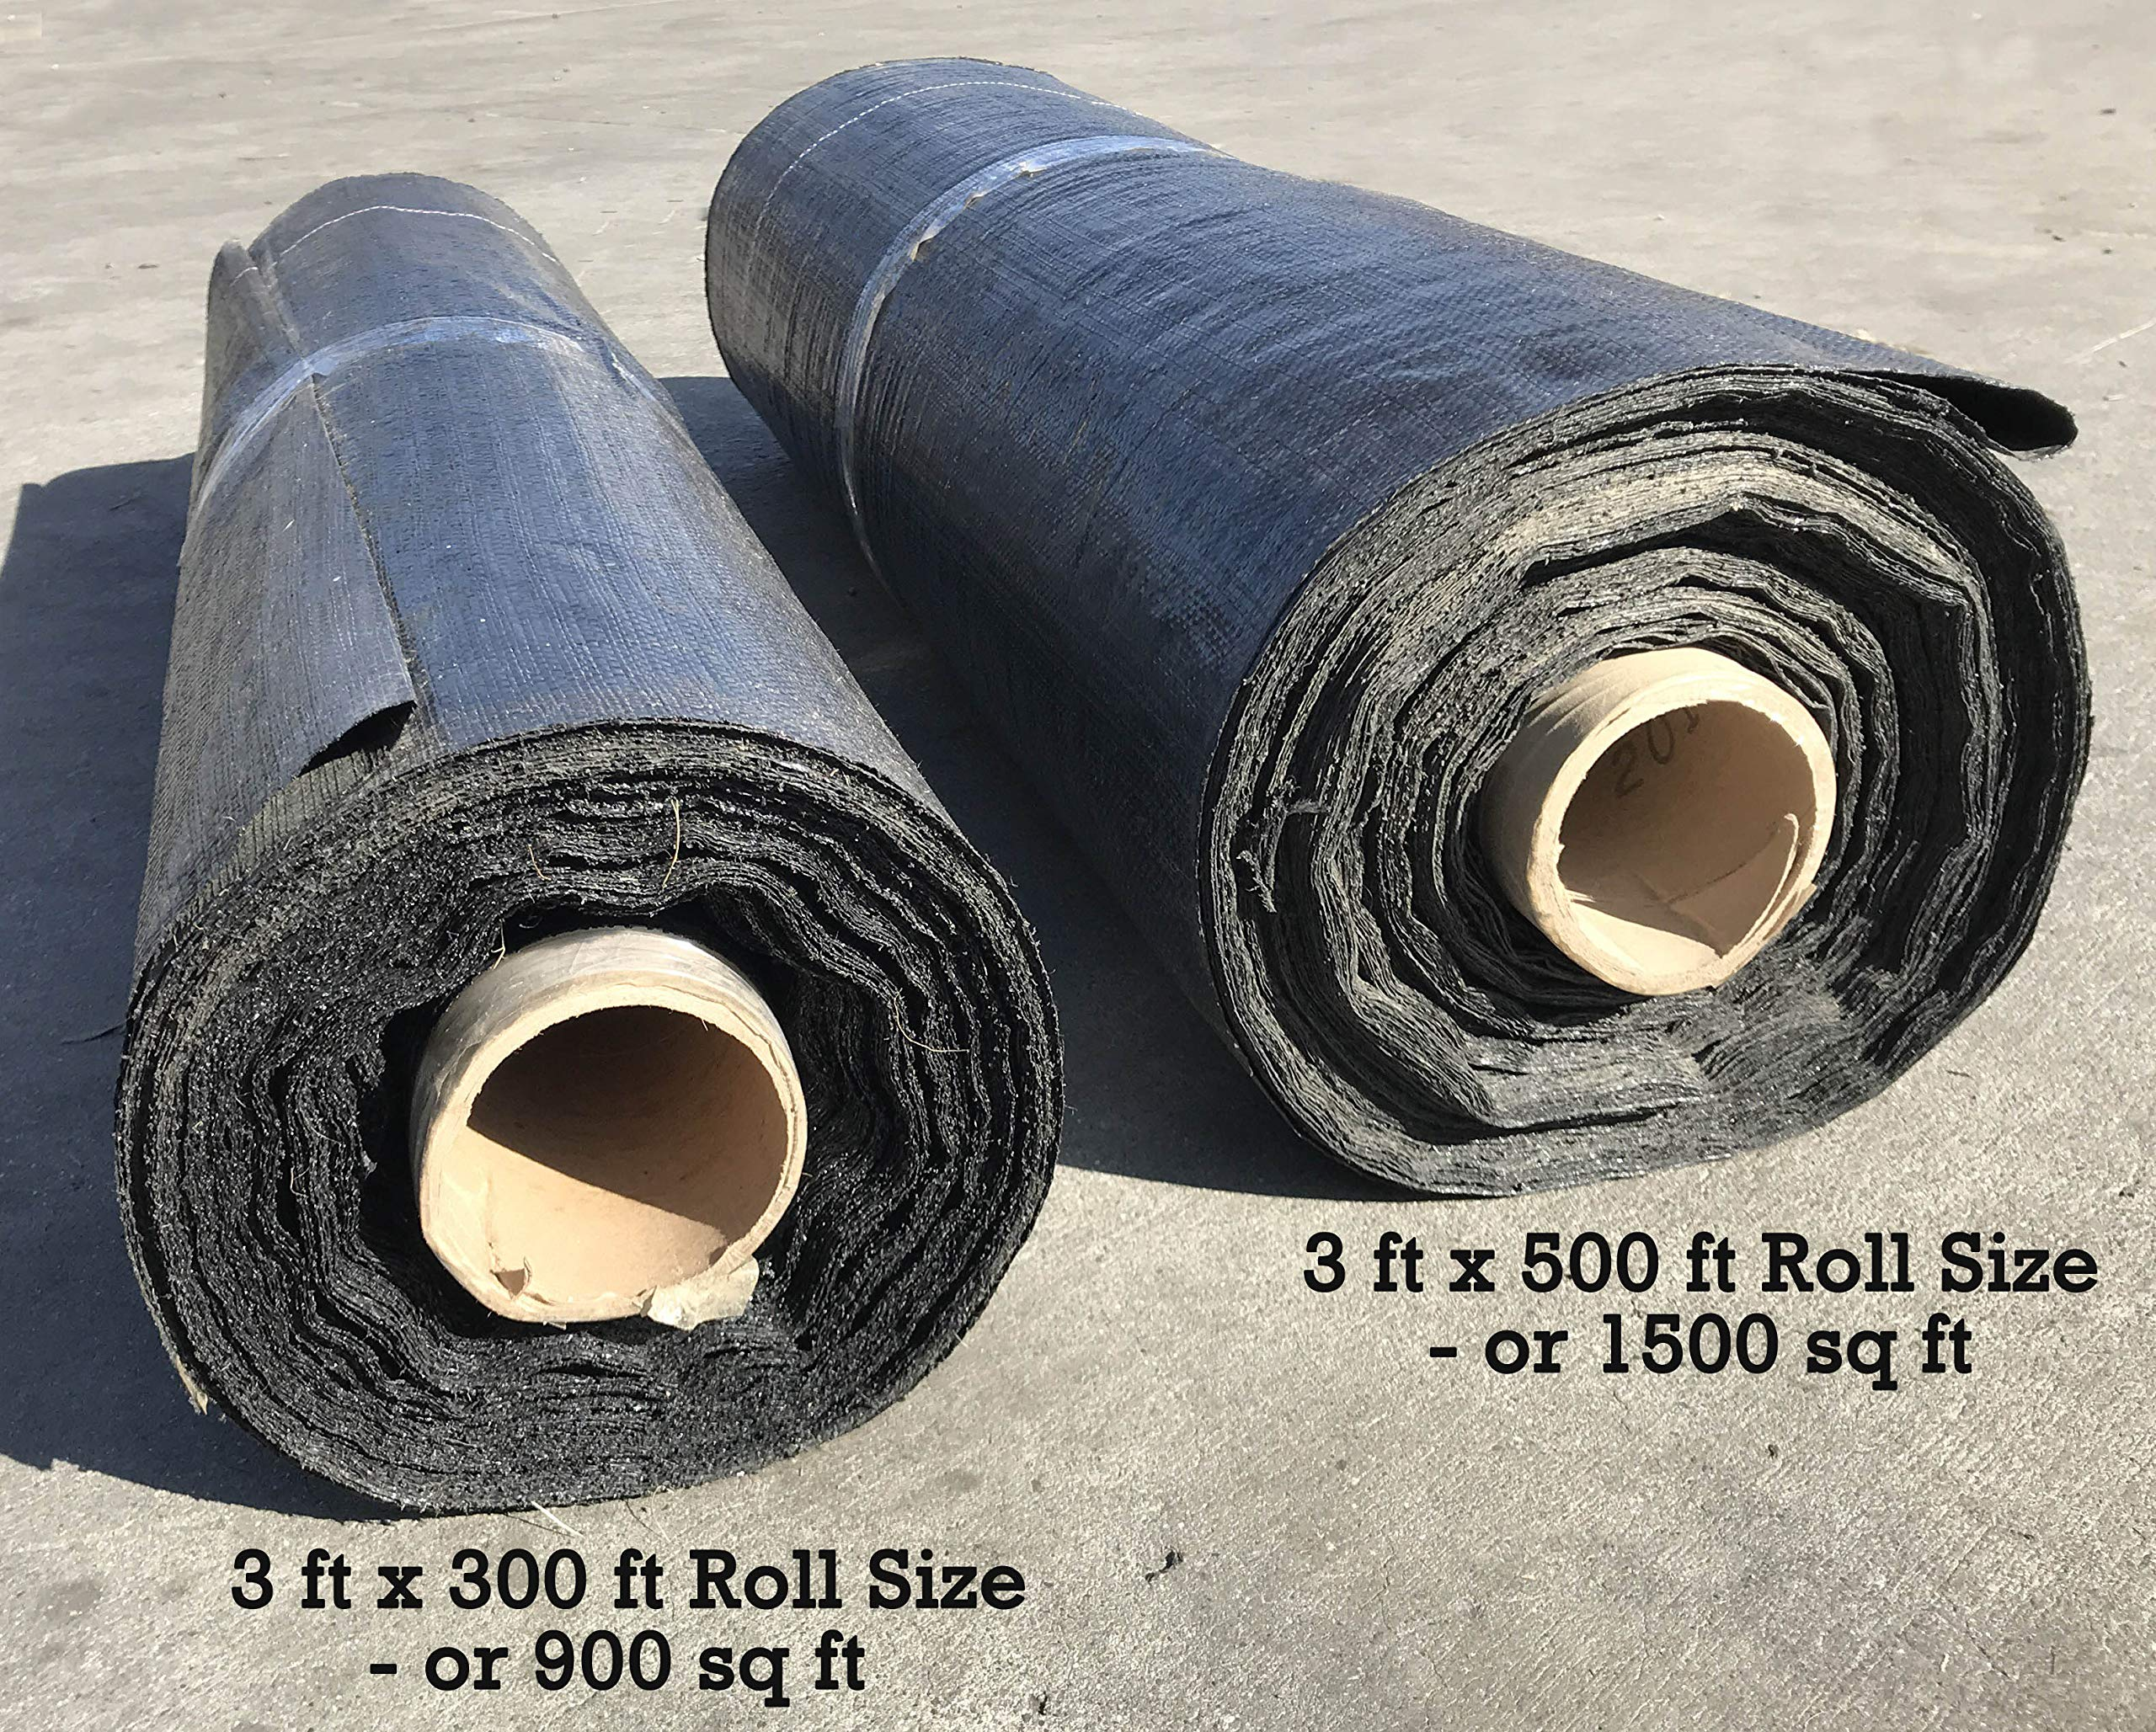 Sandbaggy Landscape Fabric - for Weed Barrier, Ground Cover, Garden Fabric (3 ft x 500 ft Roll) by Sandbaggy (Image #2)